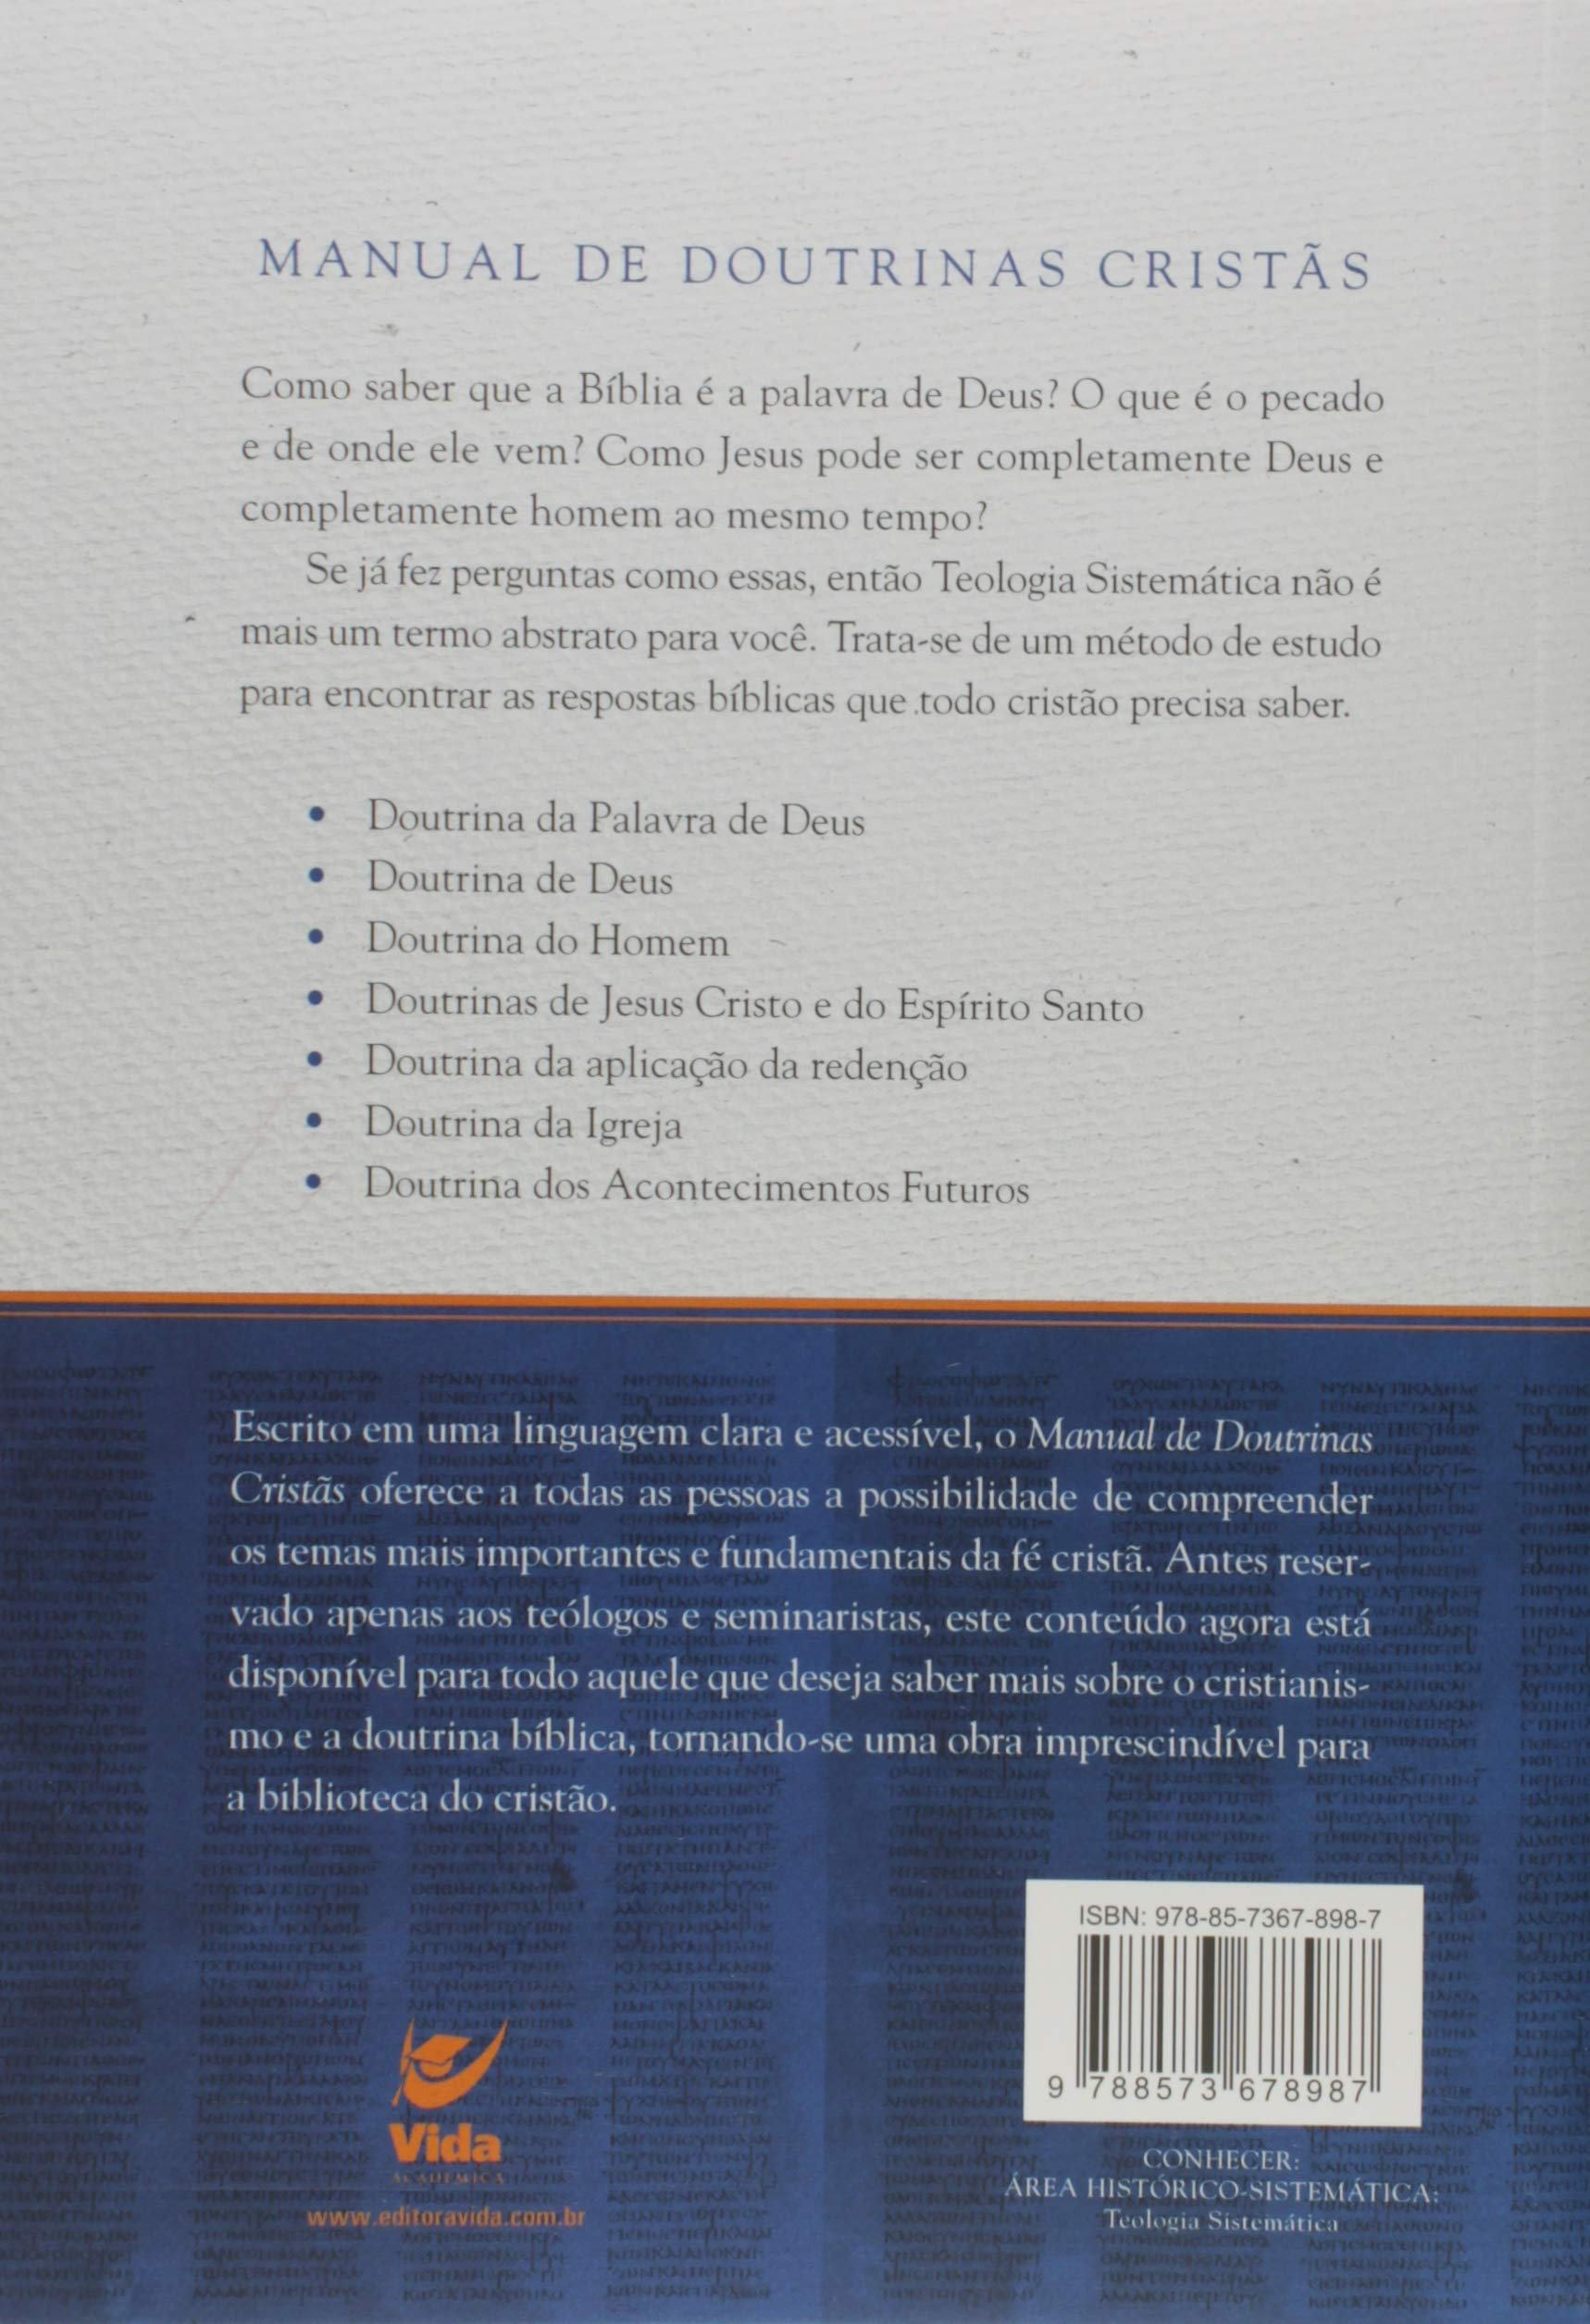 Manual de Doutrinas Cristãs: Jeff Purswell: 9788573678987: Amazon.com: Books